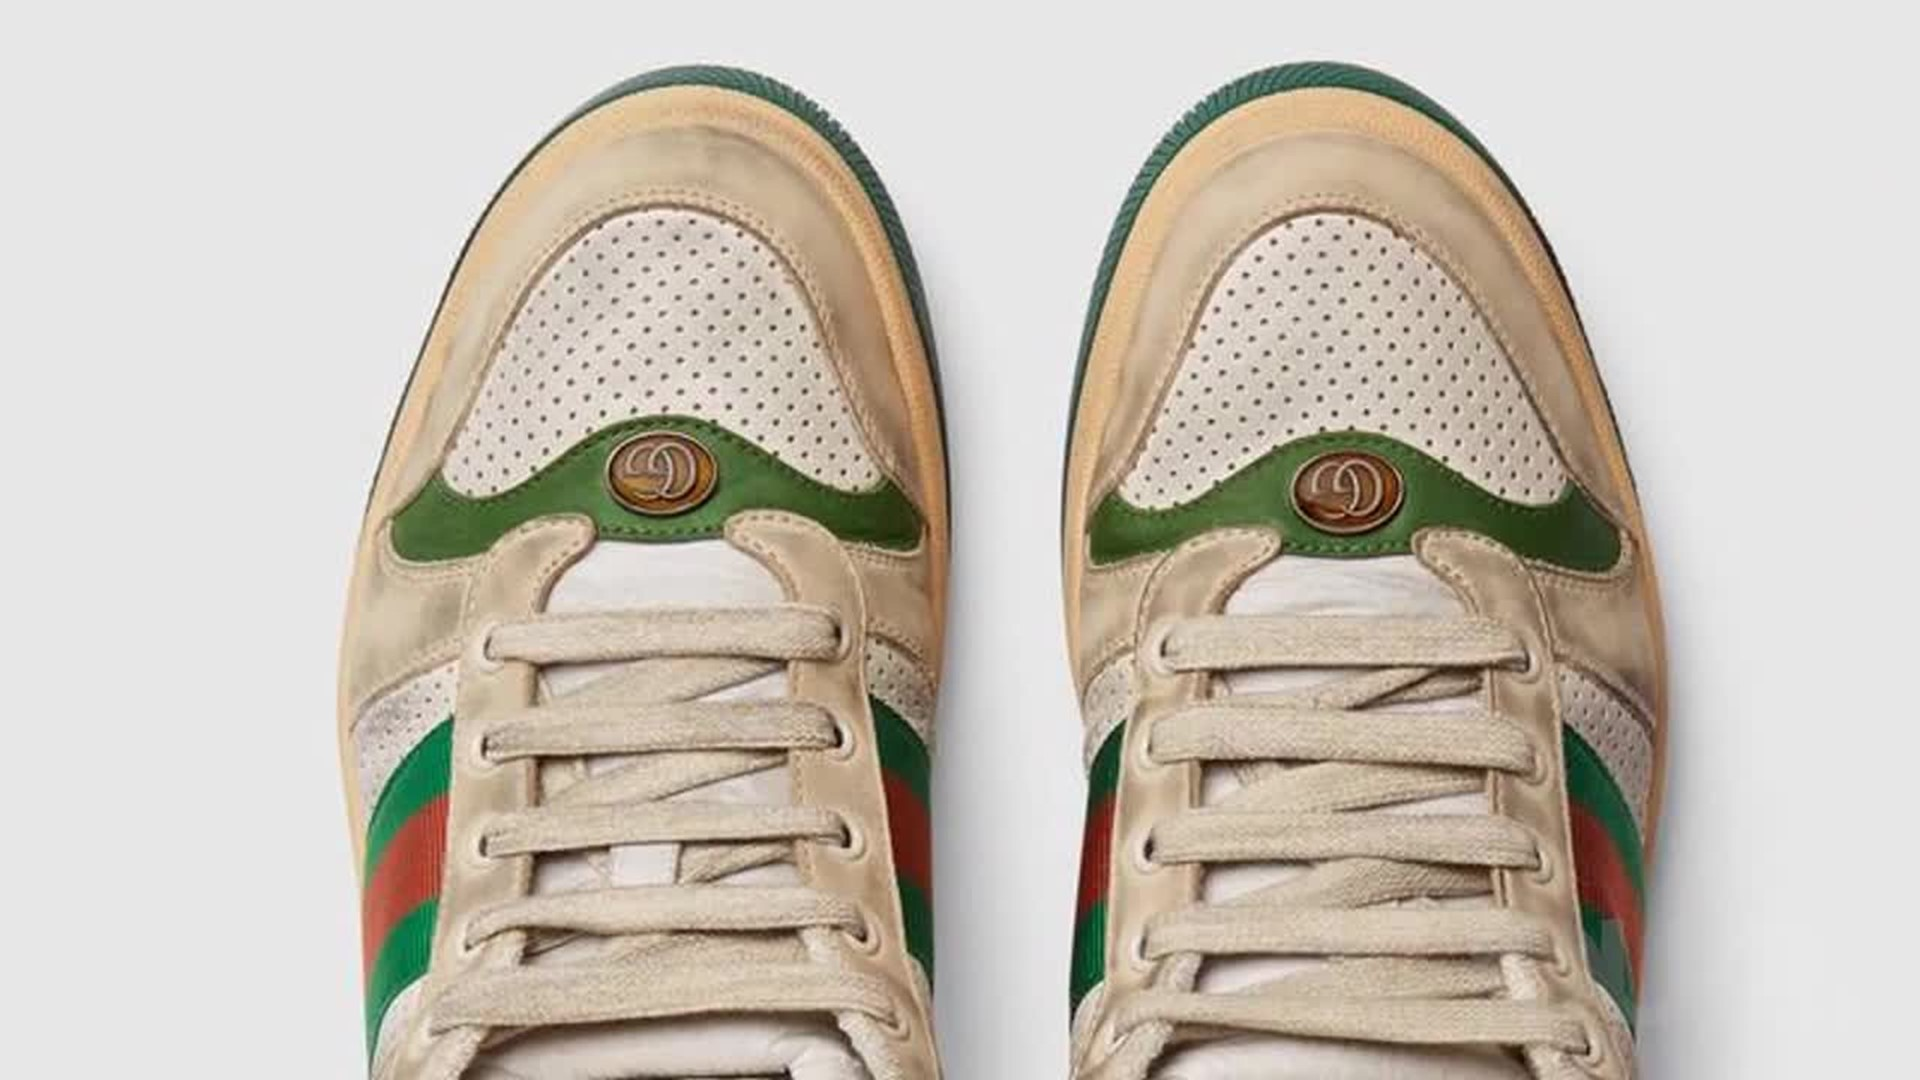 selling dirty sneakers with scuff marks